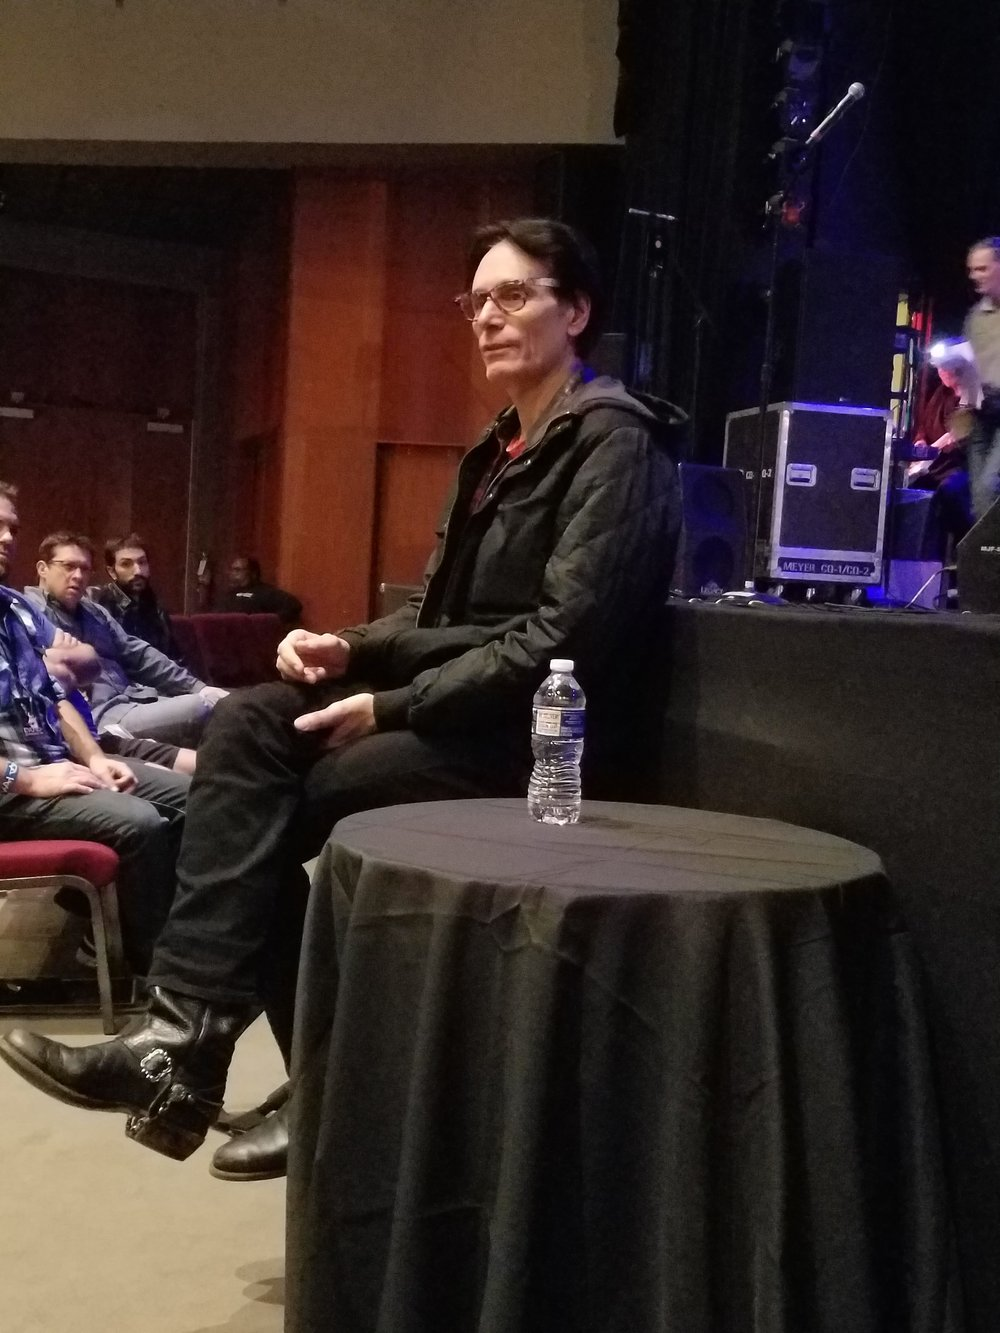 Steve Vai during EVO Q&A